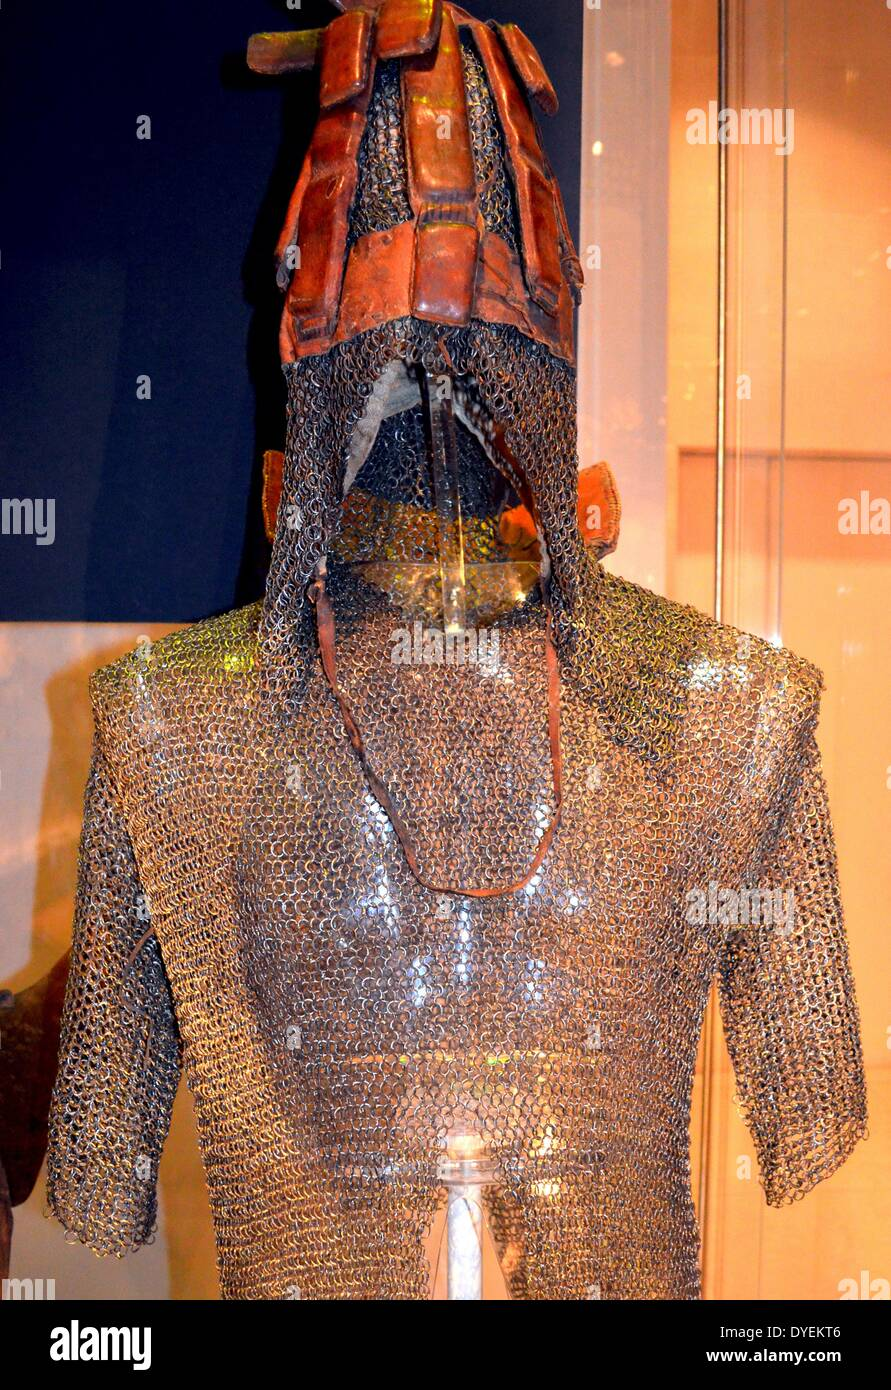 Helmet and Jacket 1922. Made from leather, cloth and chain mail. - Stock Image